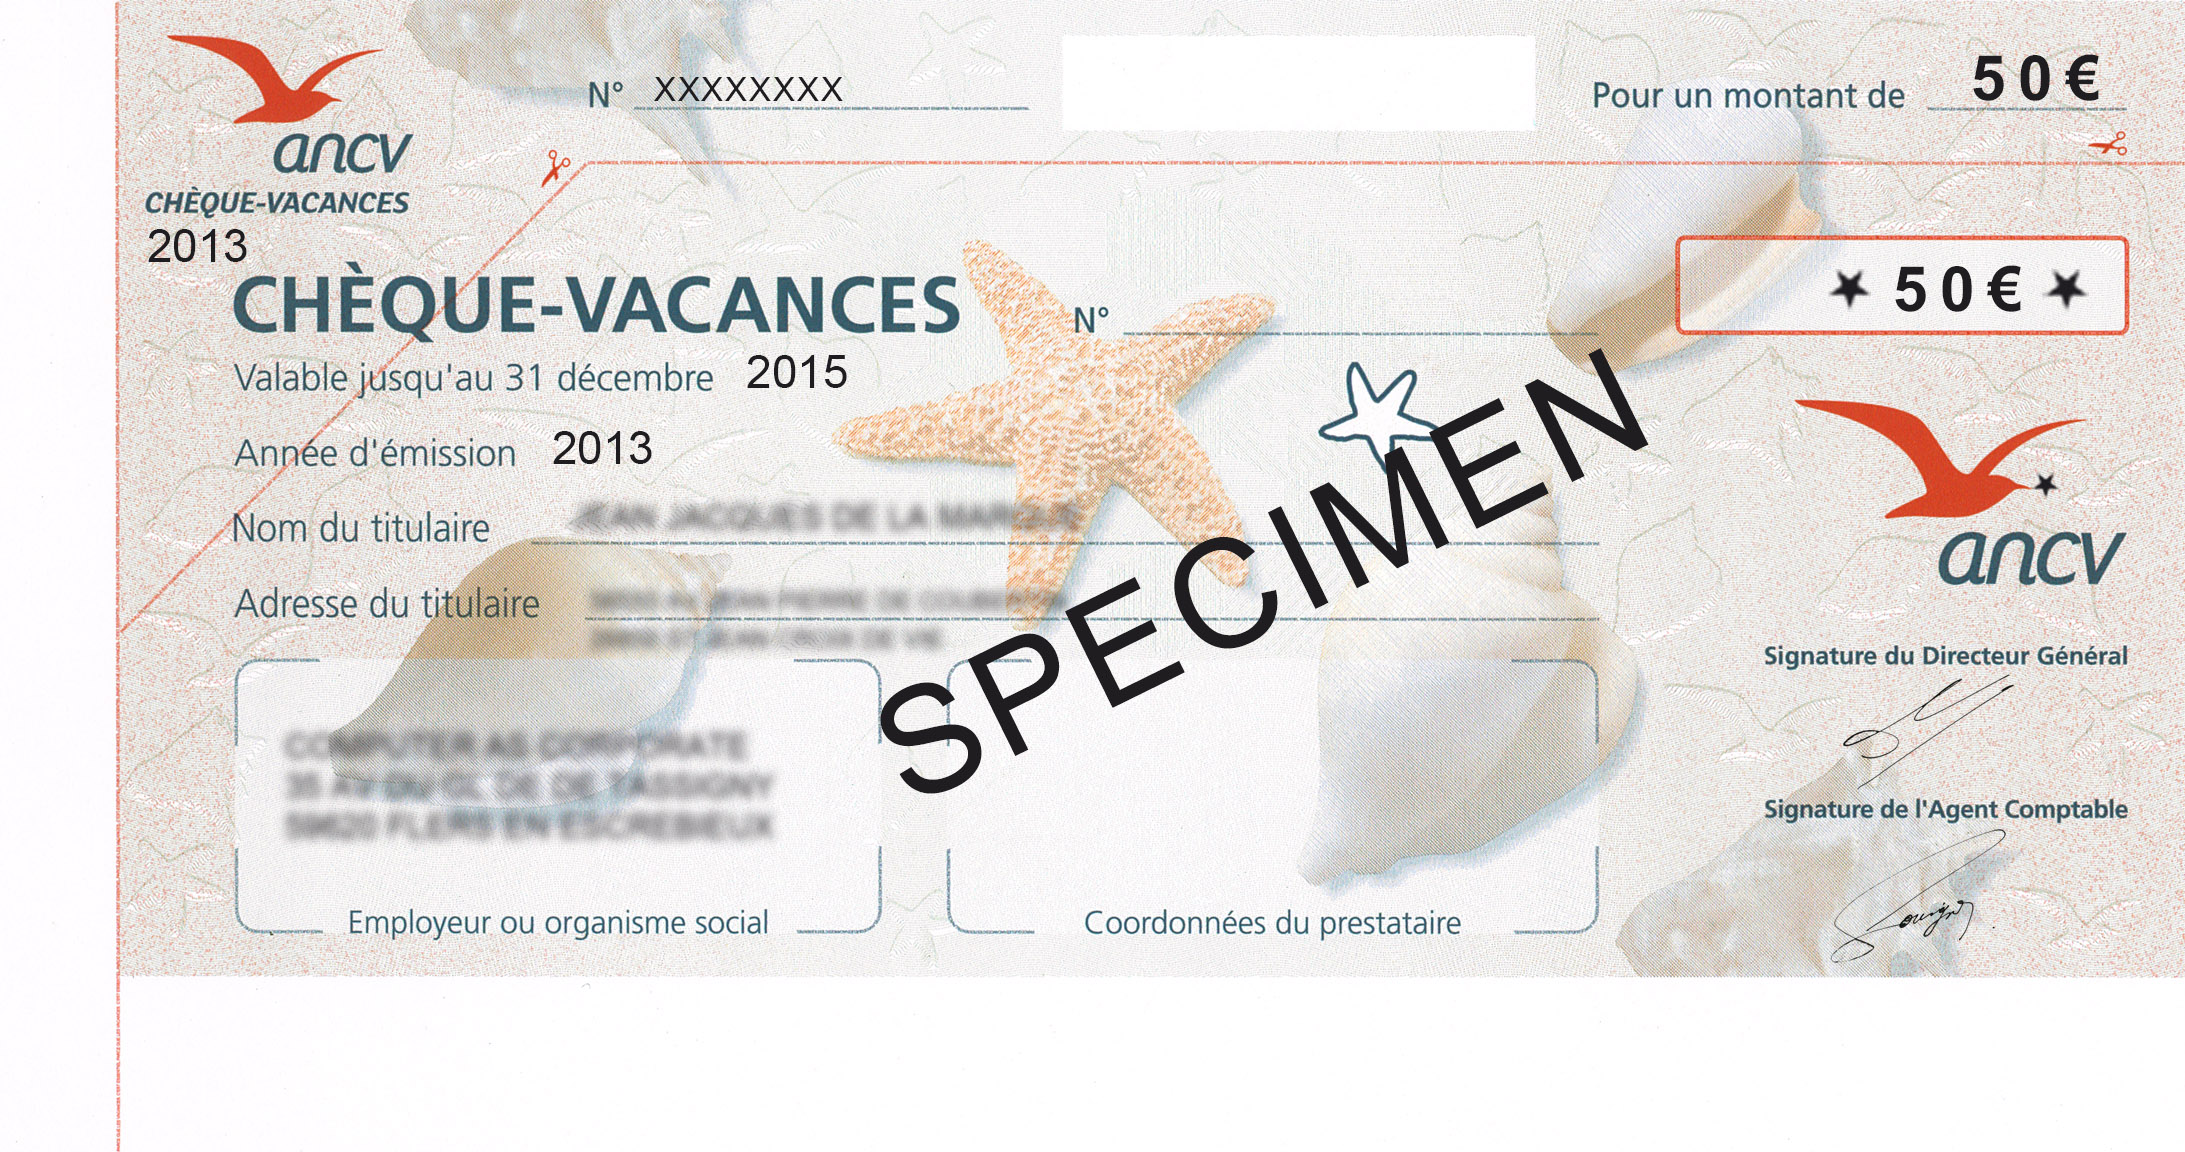 Difference coupons sport et cheques vacances